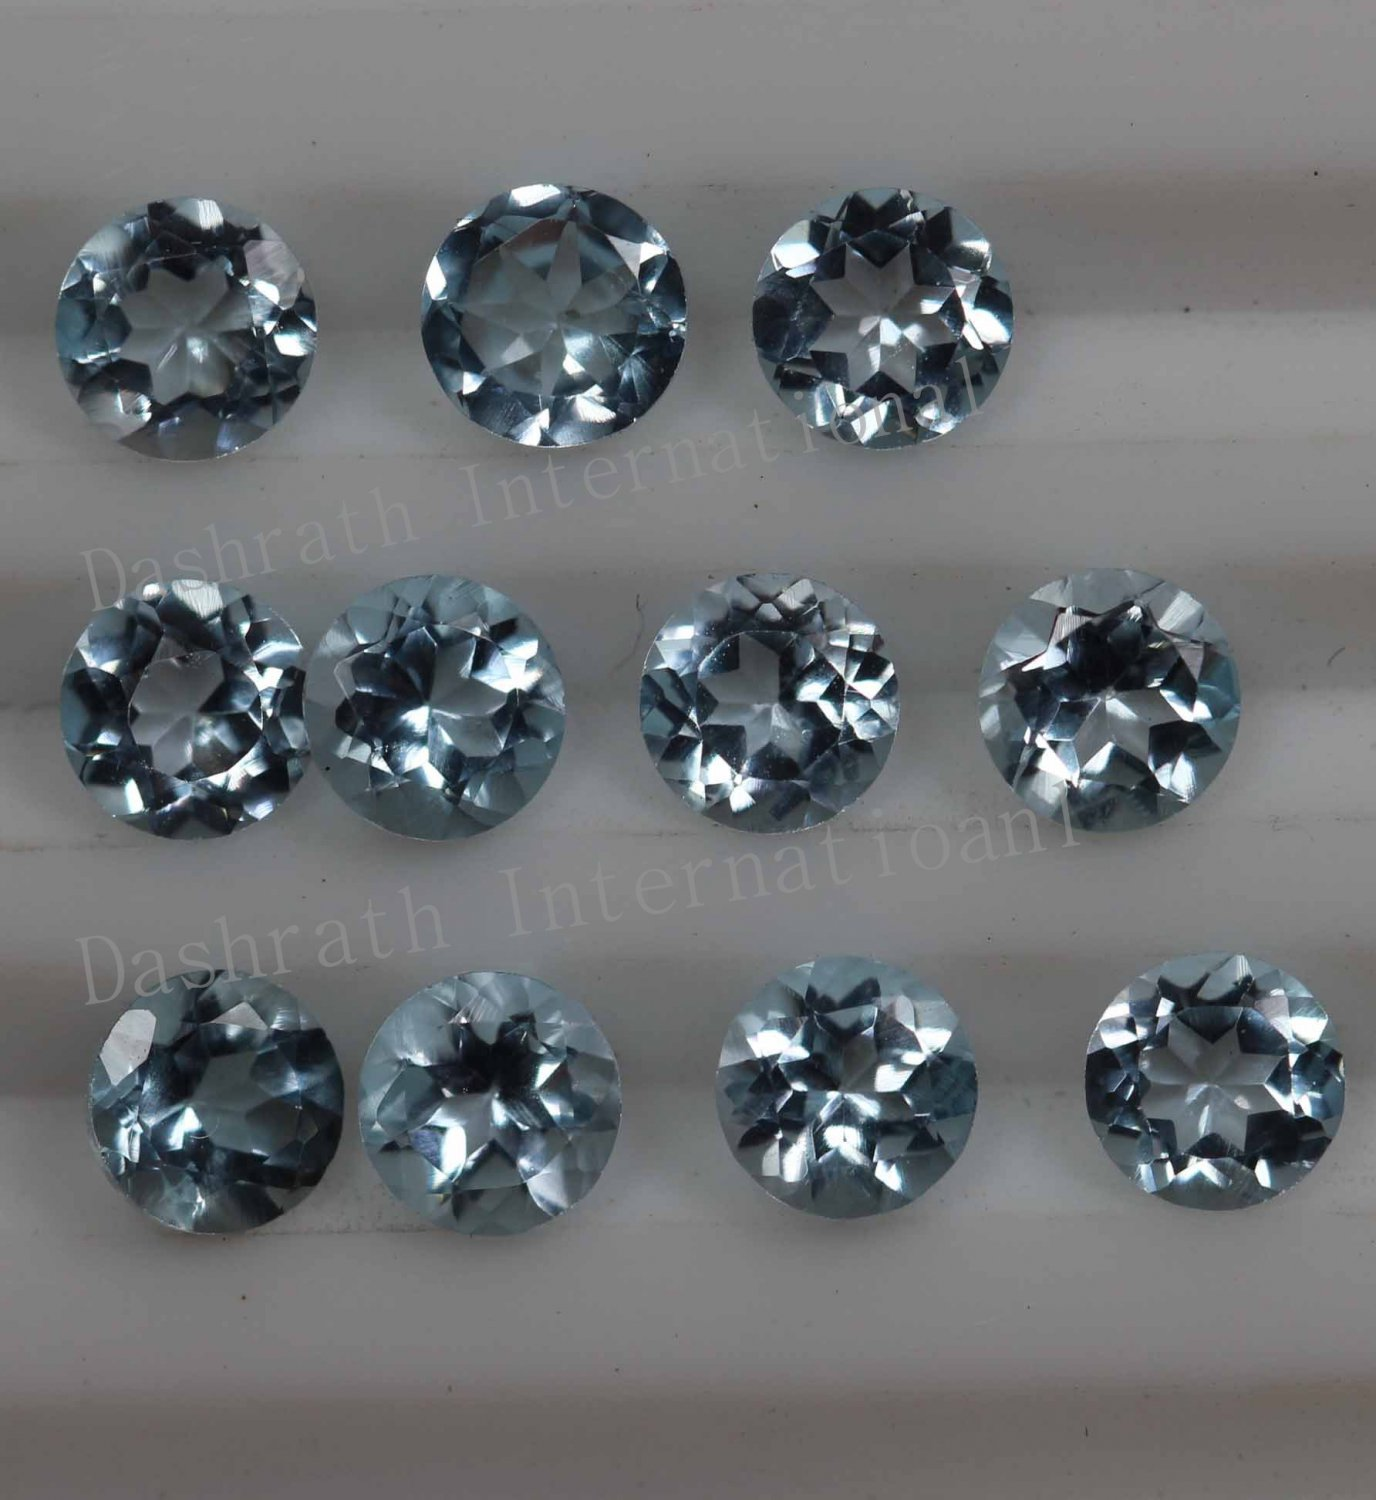 7mmNatural Sky Blue Topaz Faceted Cut Round 1 Piece  Blue Color  Top Quality Loose Gemstone